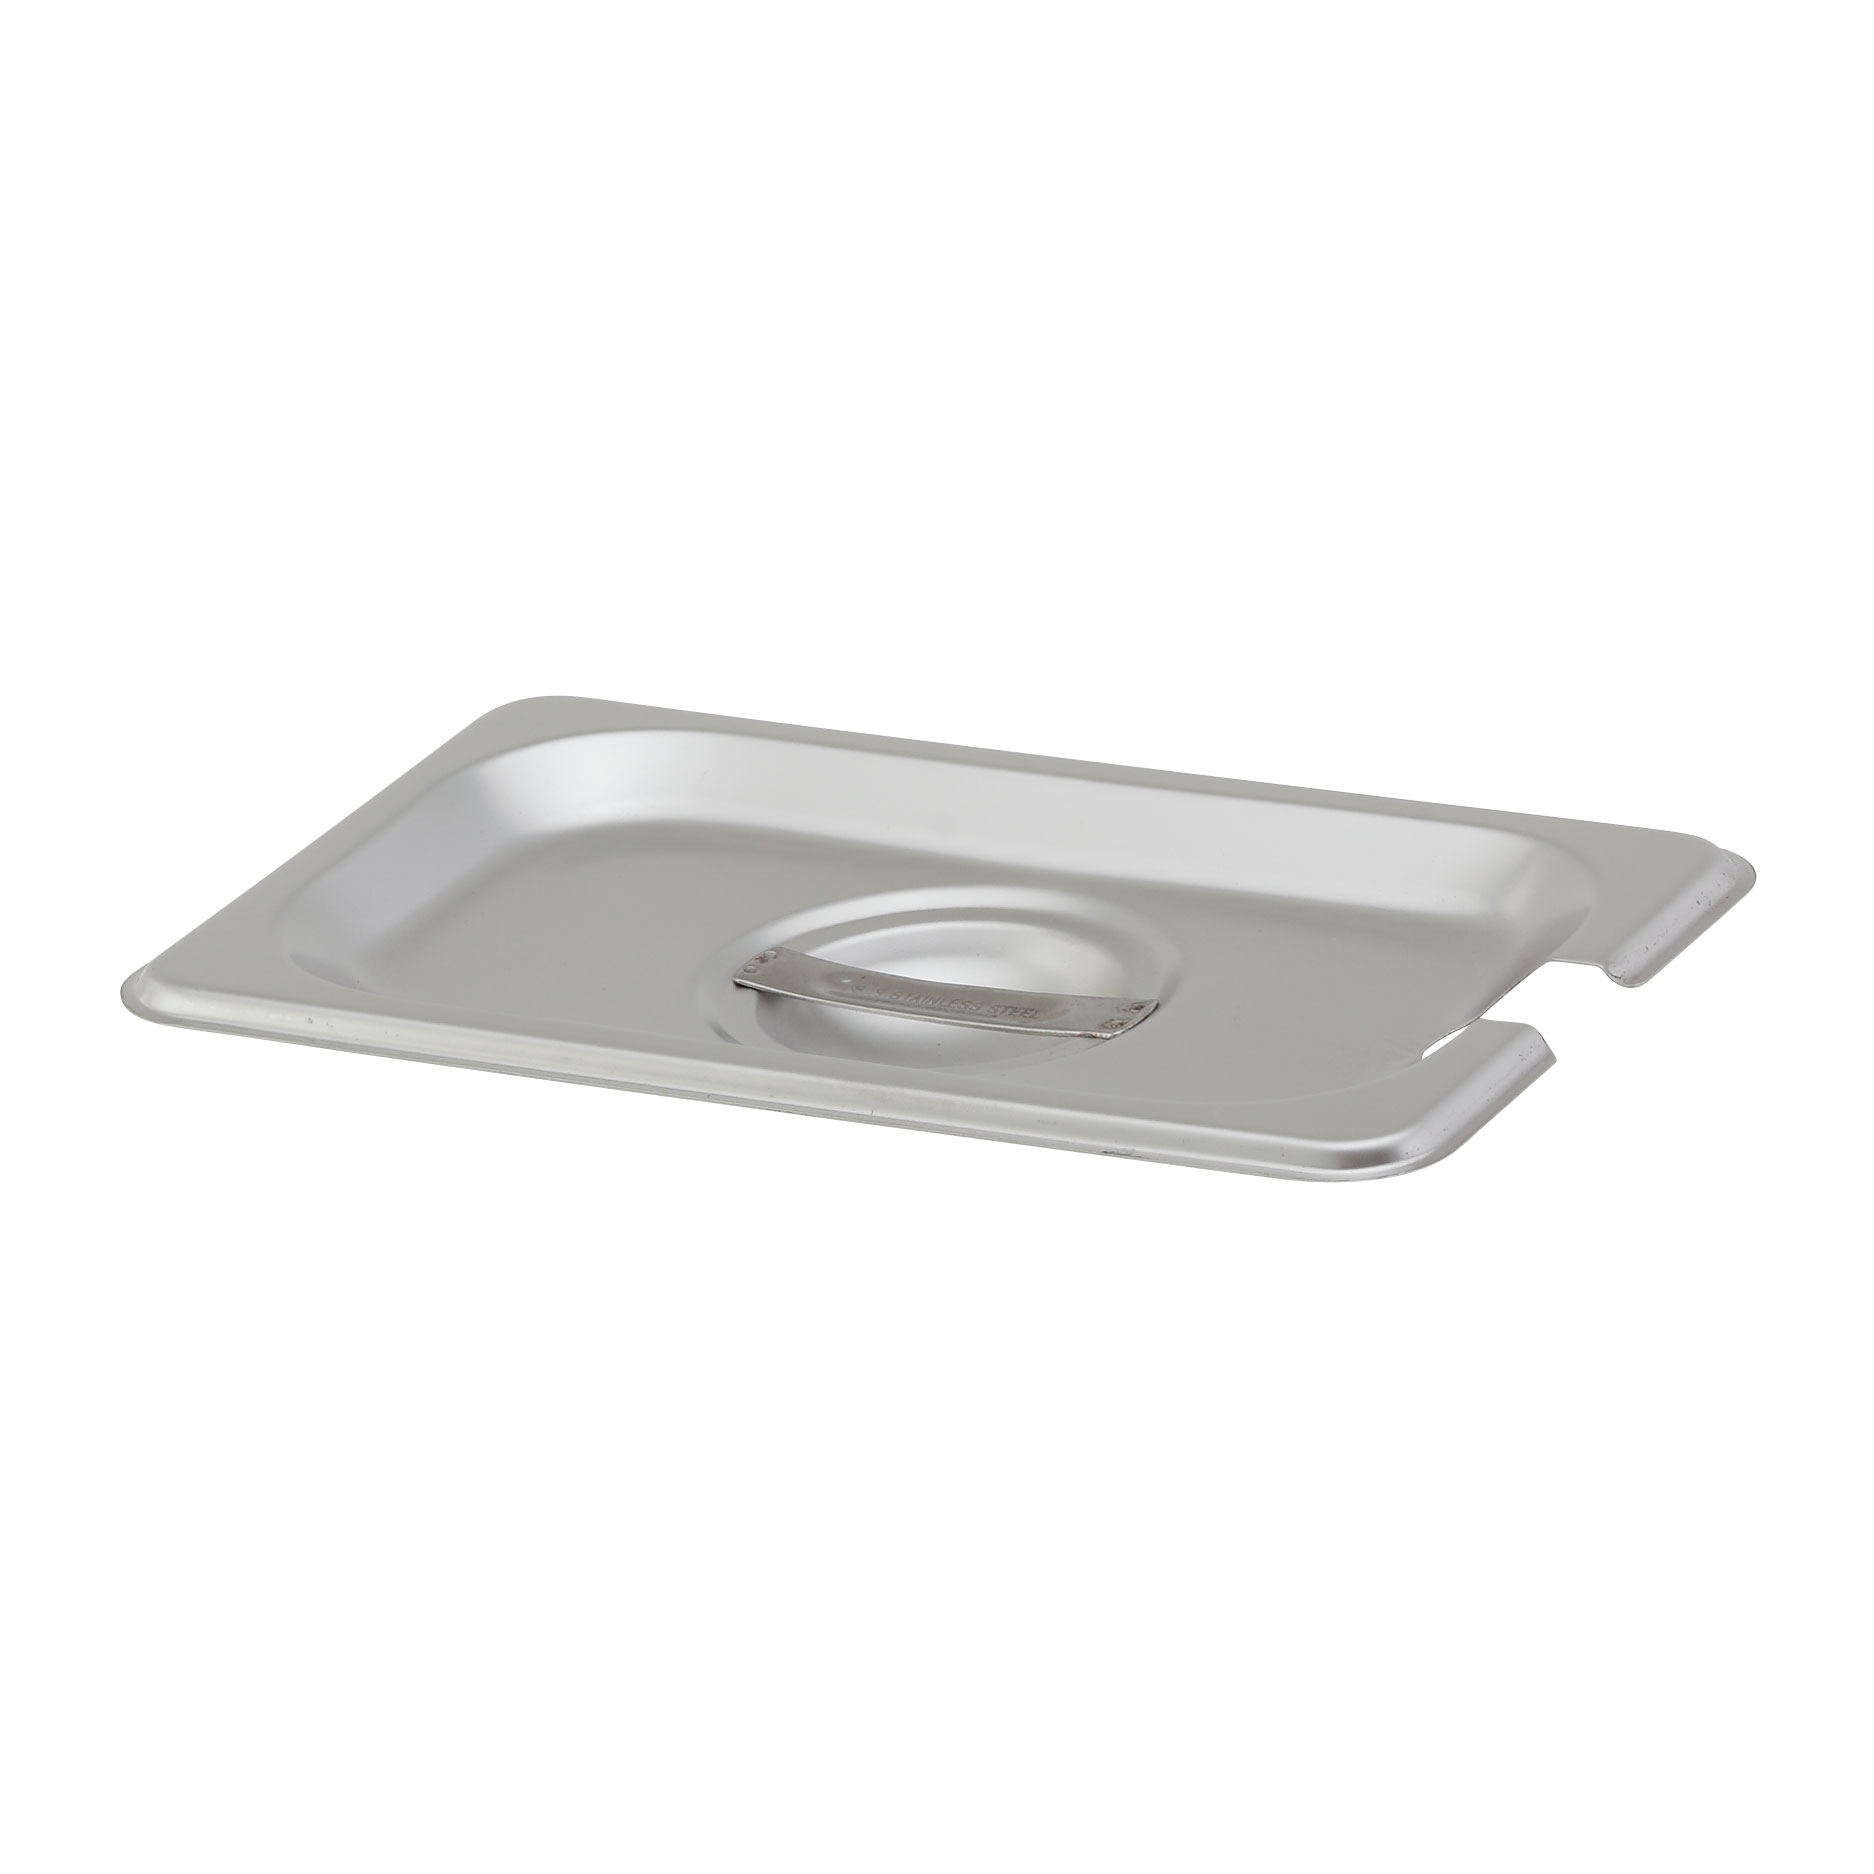 Royal Industries ROY STP 1900 2 steam table pan cover, stainless steel